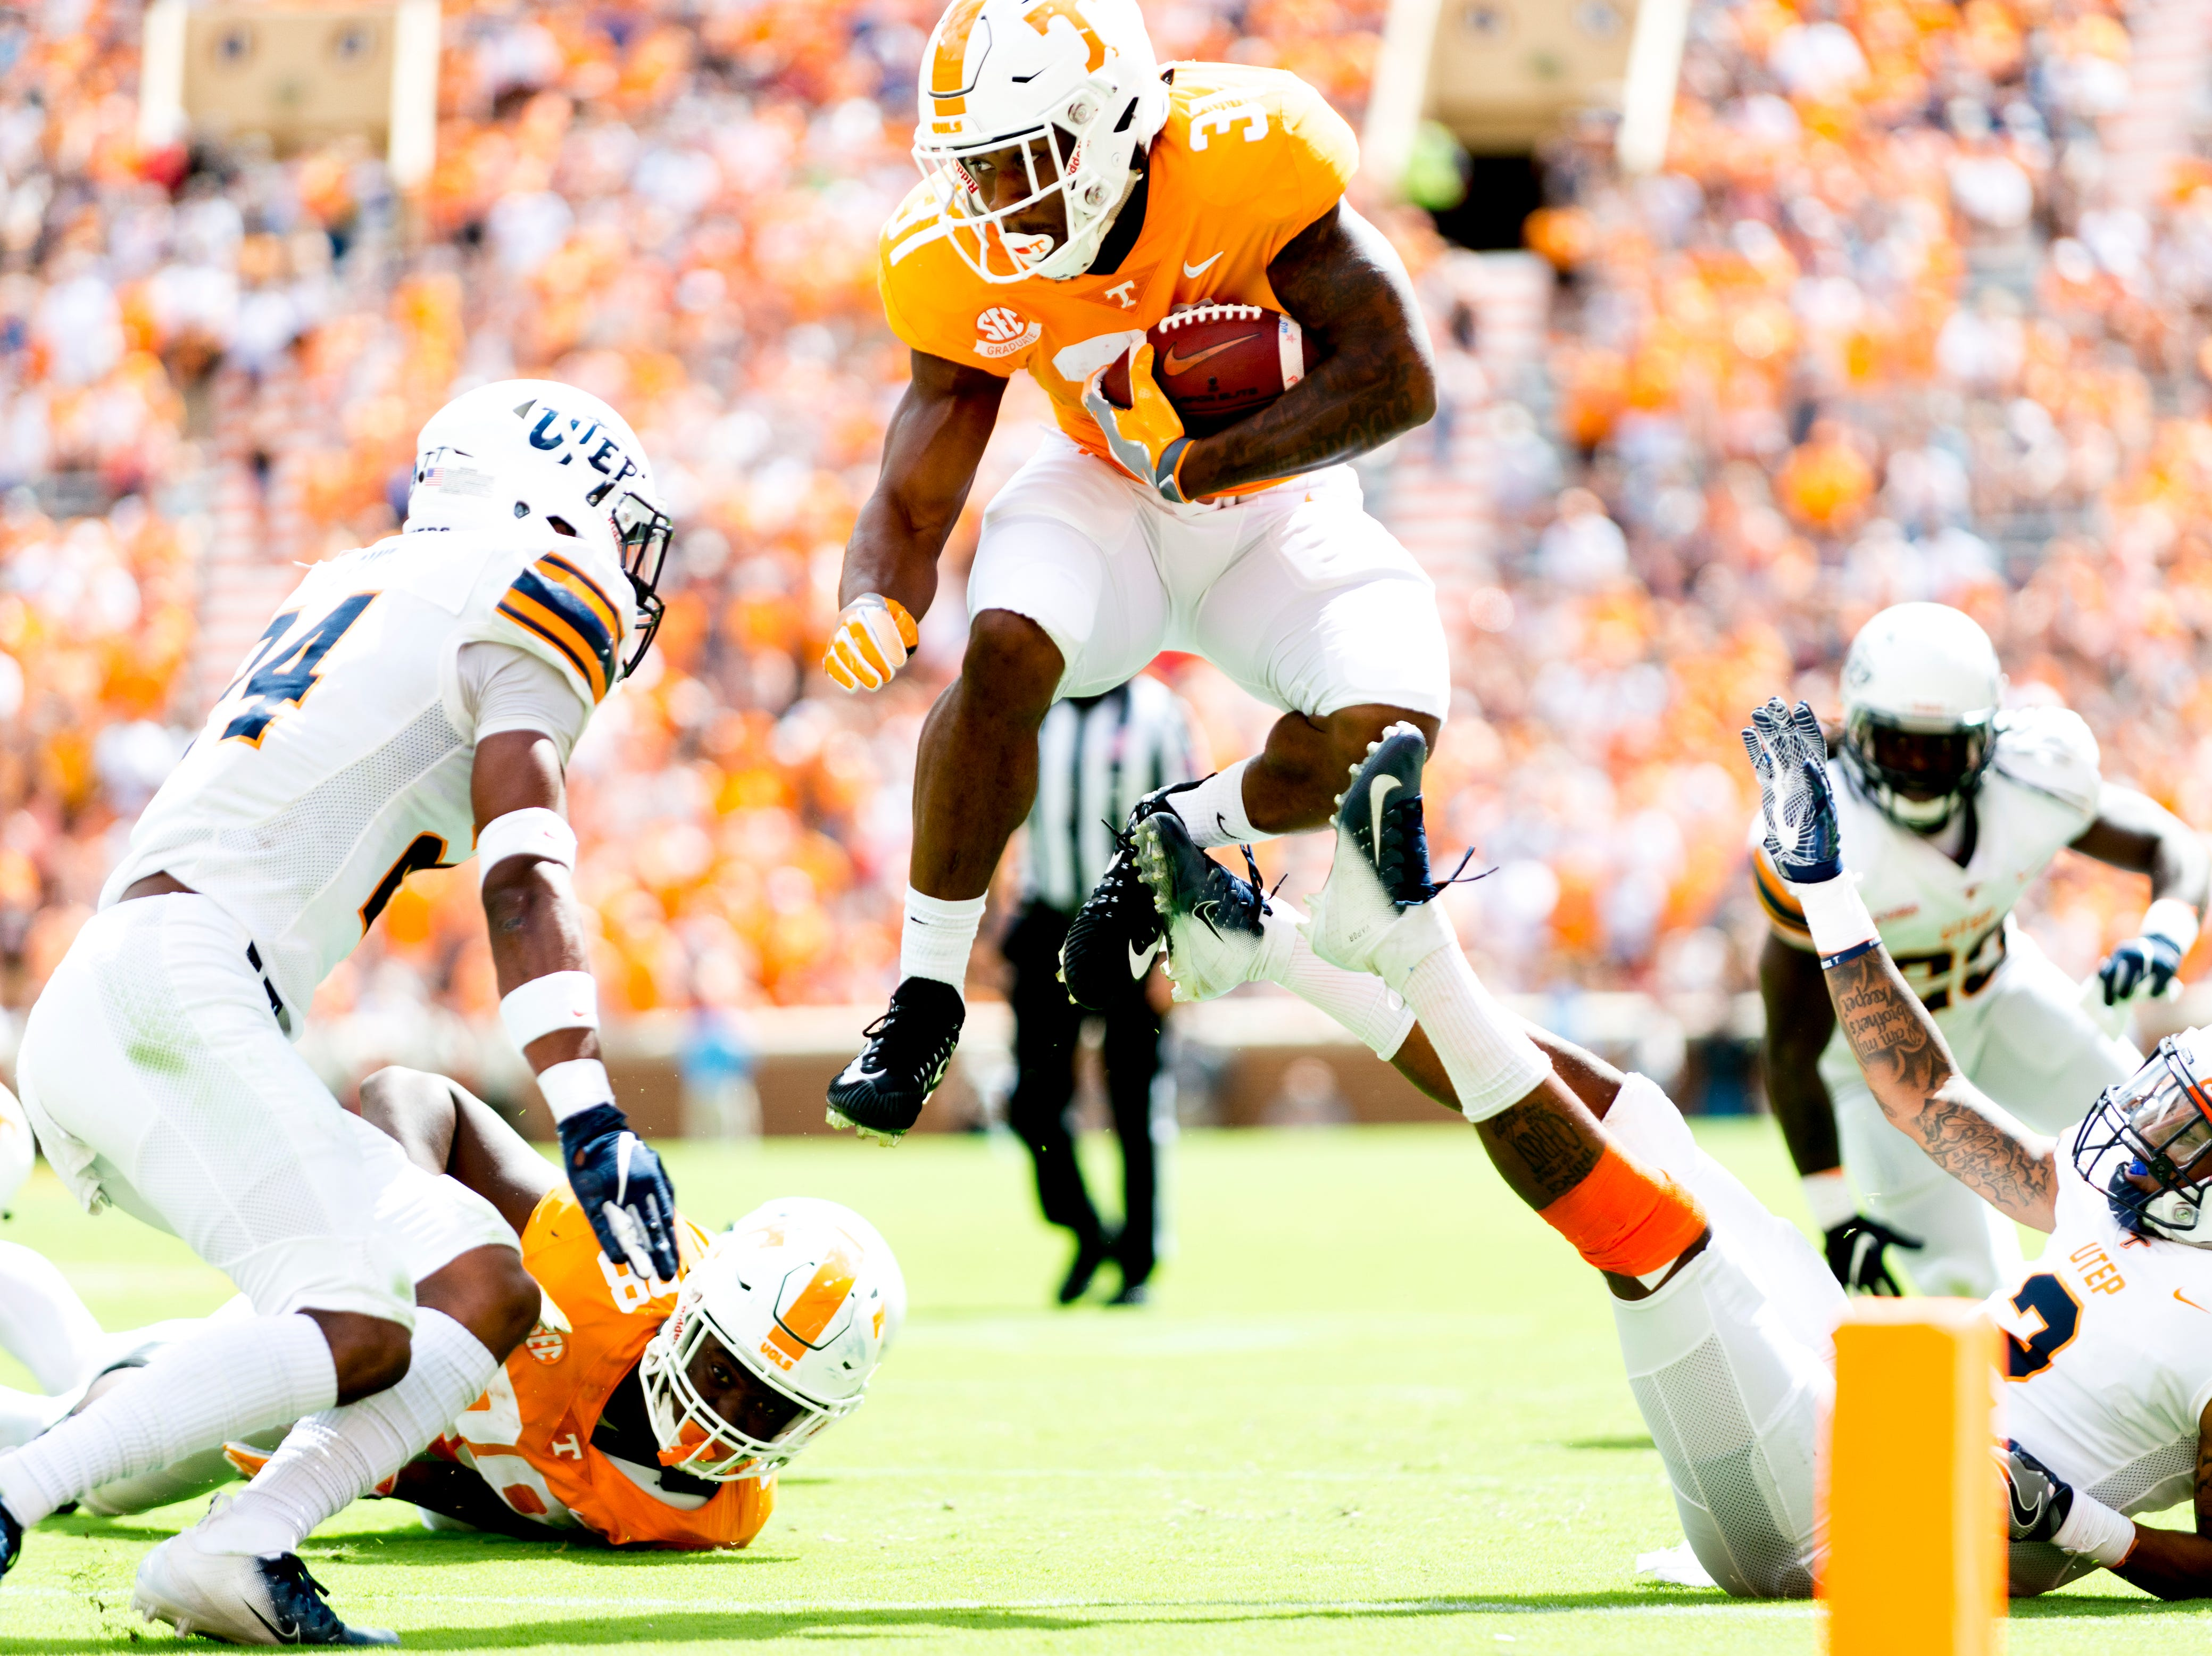 Tennessee running back Madre London (31) leaps over for extra yardage to the goal line UTEP linebacker Sione Tupou (3) during a game between Tennessee and UTEP at Neyland Stadium in Knoxville, Tennessee on Saturday, September 15, 2018.